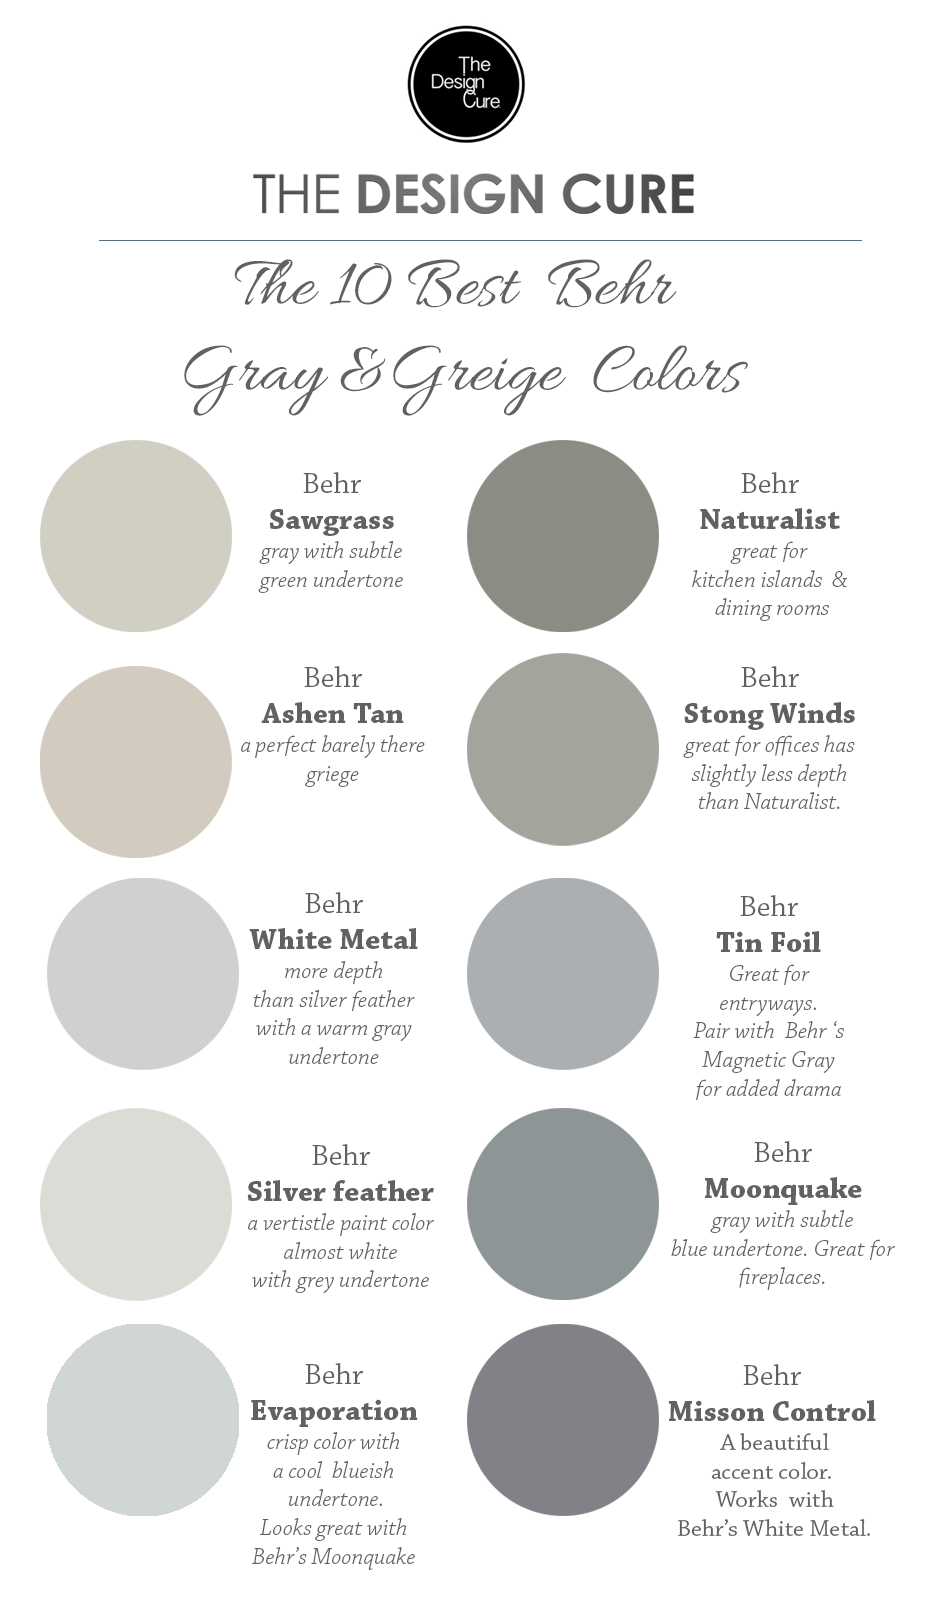 A Round Up List Of The 10 Best Gray And Greige Colors By Behr